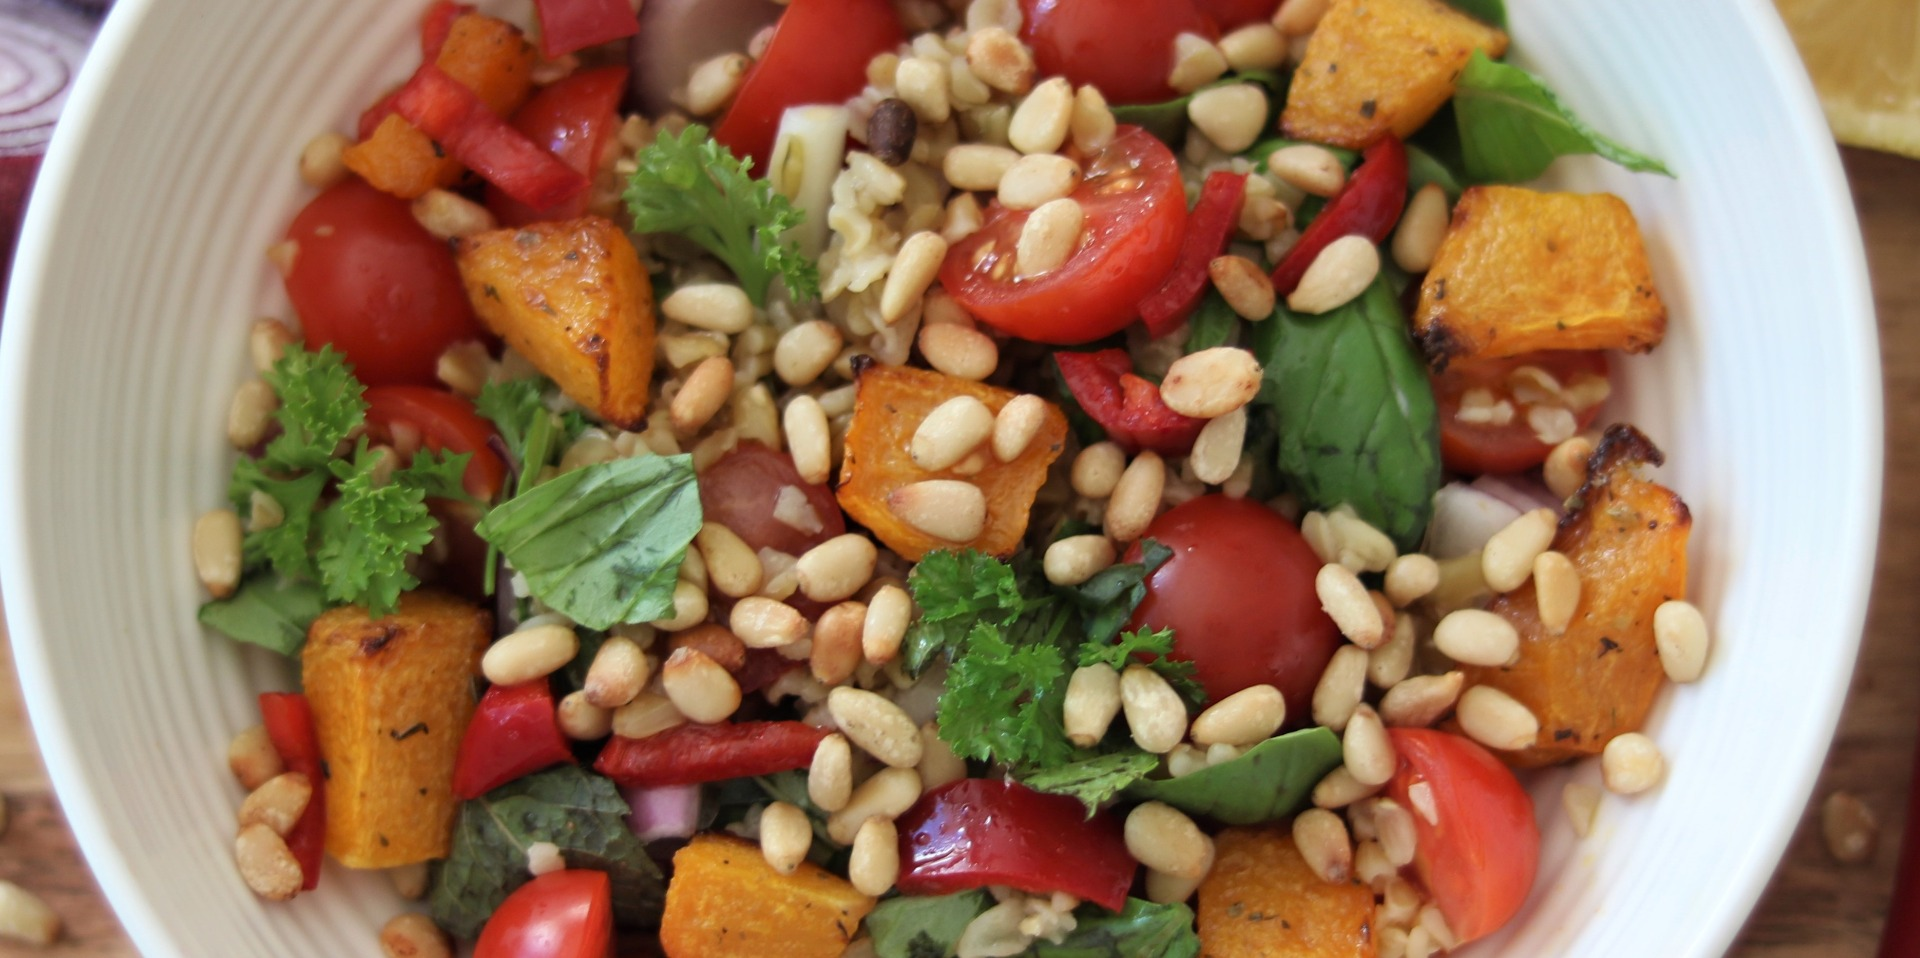 Butternut Squash and Pine Nut Salad